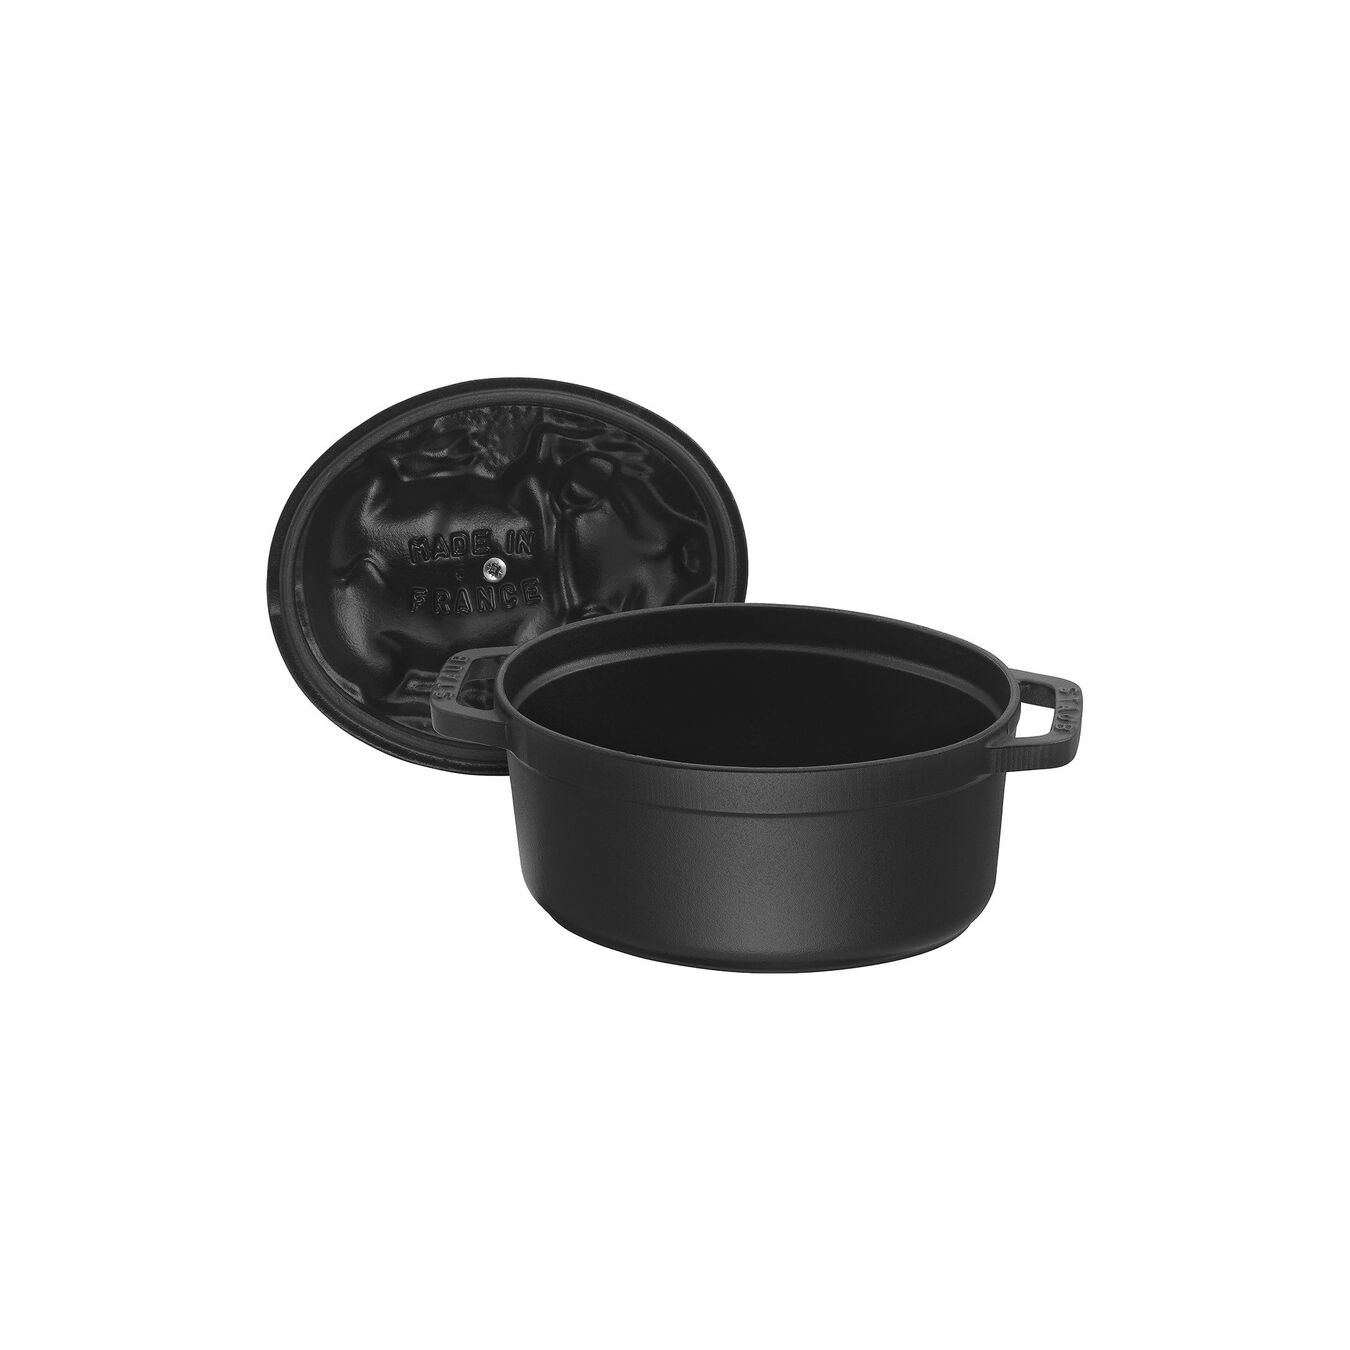 Cocotte 17 cm, oval, Schwarz, Gusseisen,,large 6